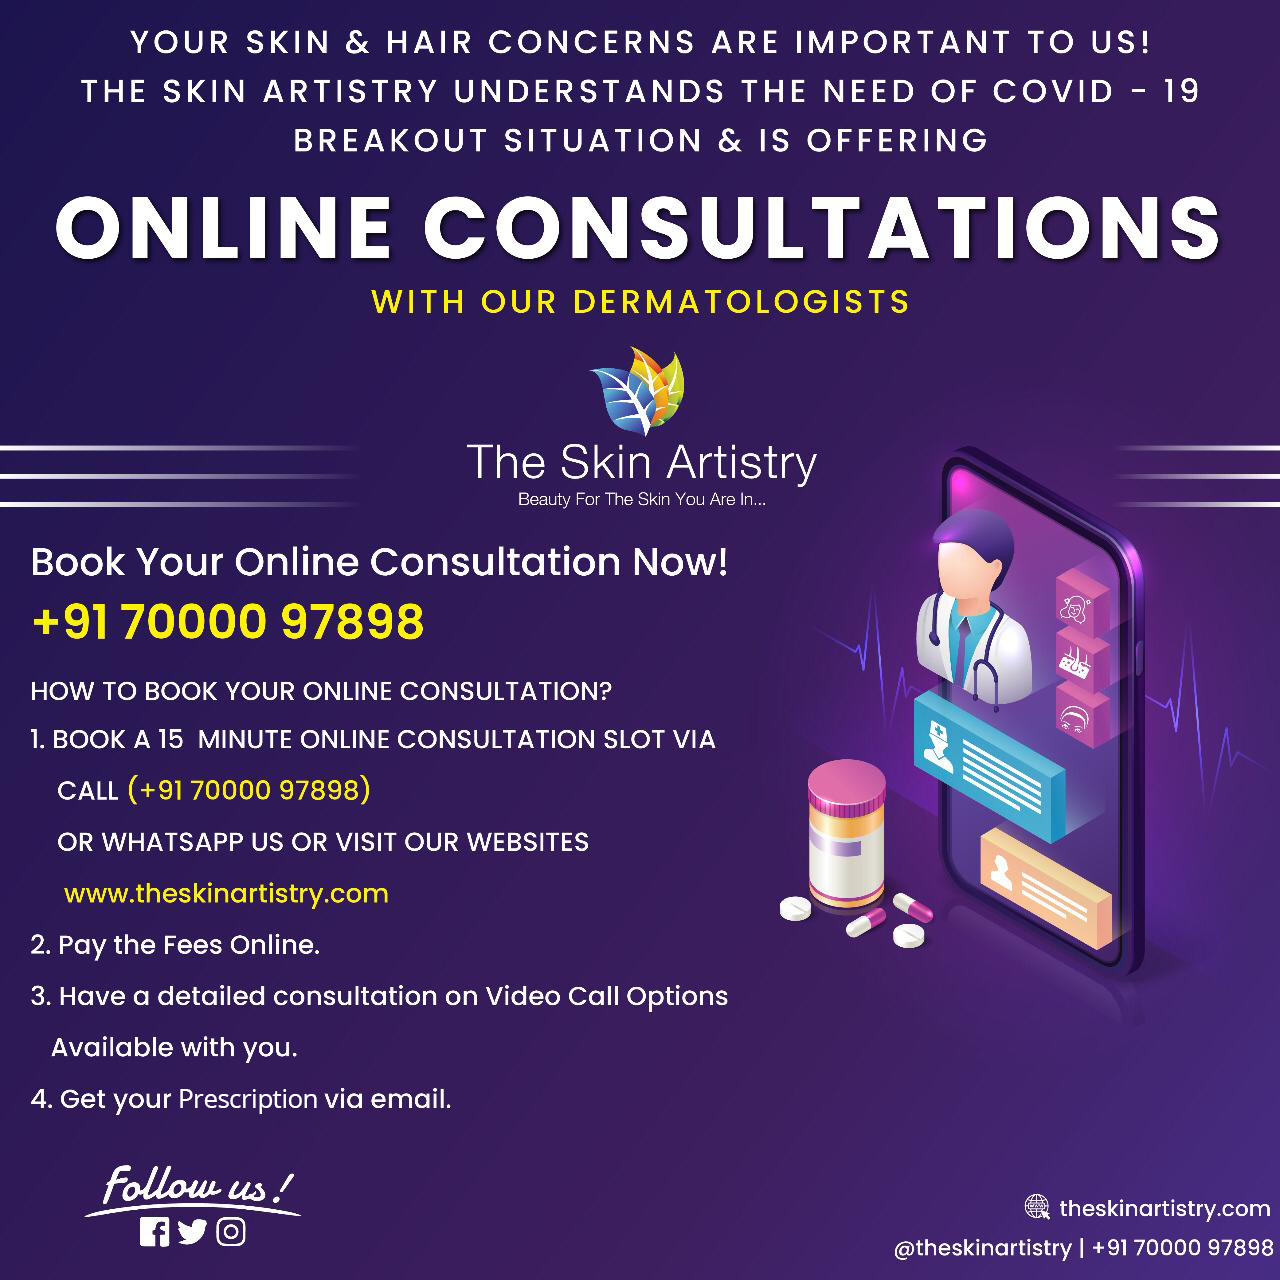 Online-Hair-Skin-Consultation-Theskinartistry